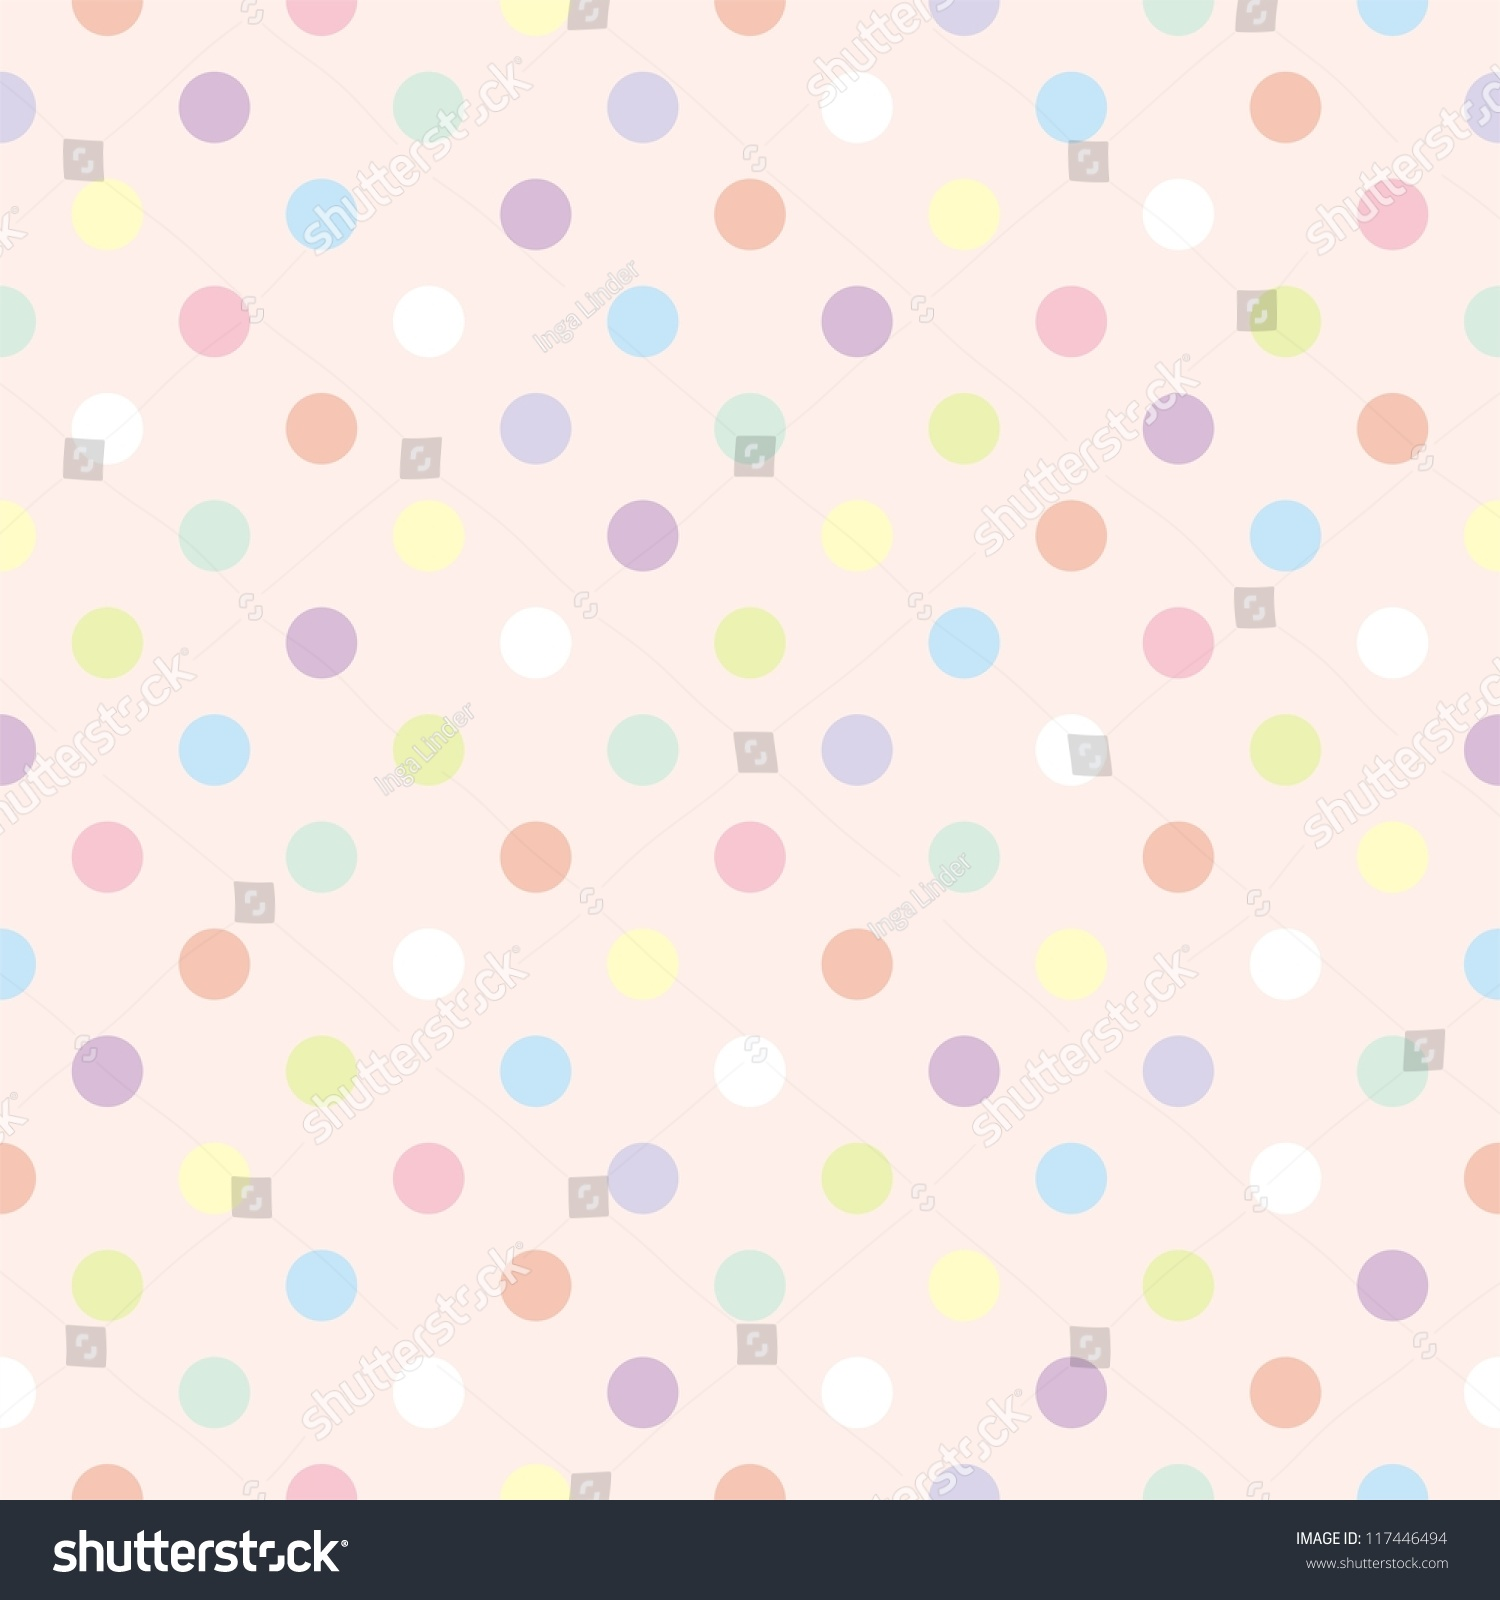 Colorful Vector Background Polka Dots On Stock Vector ...